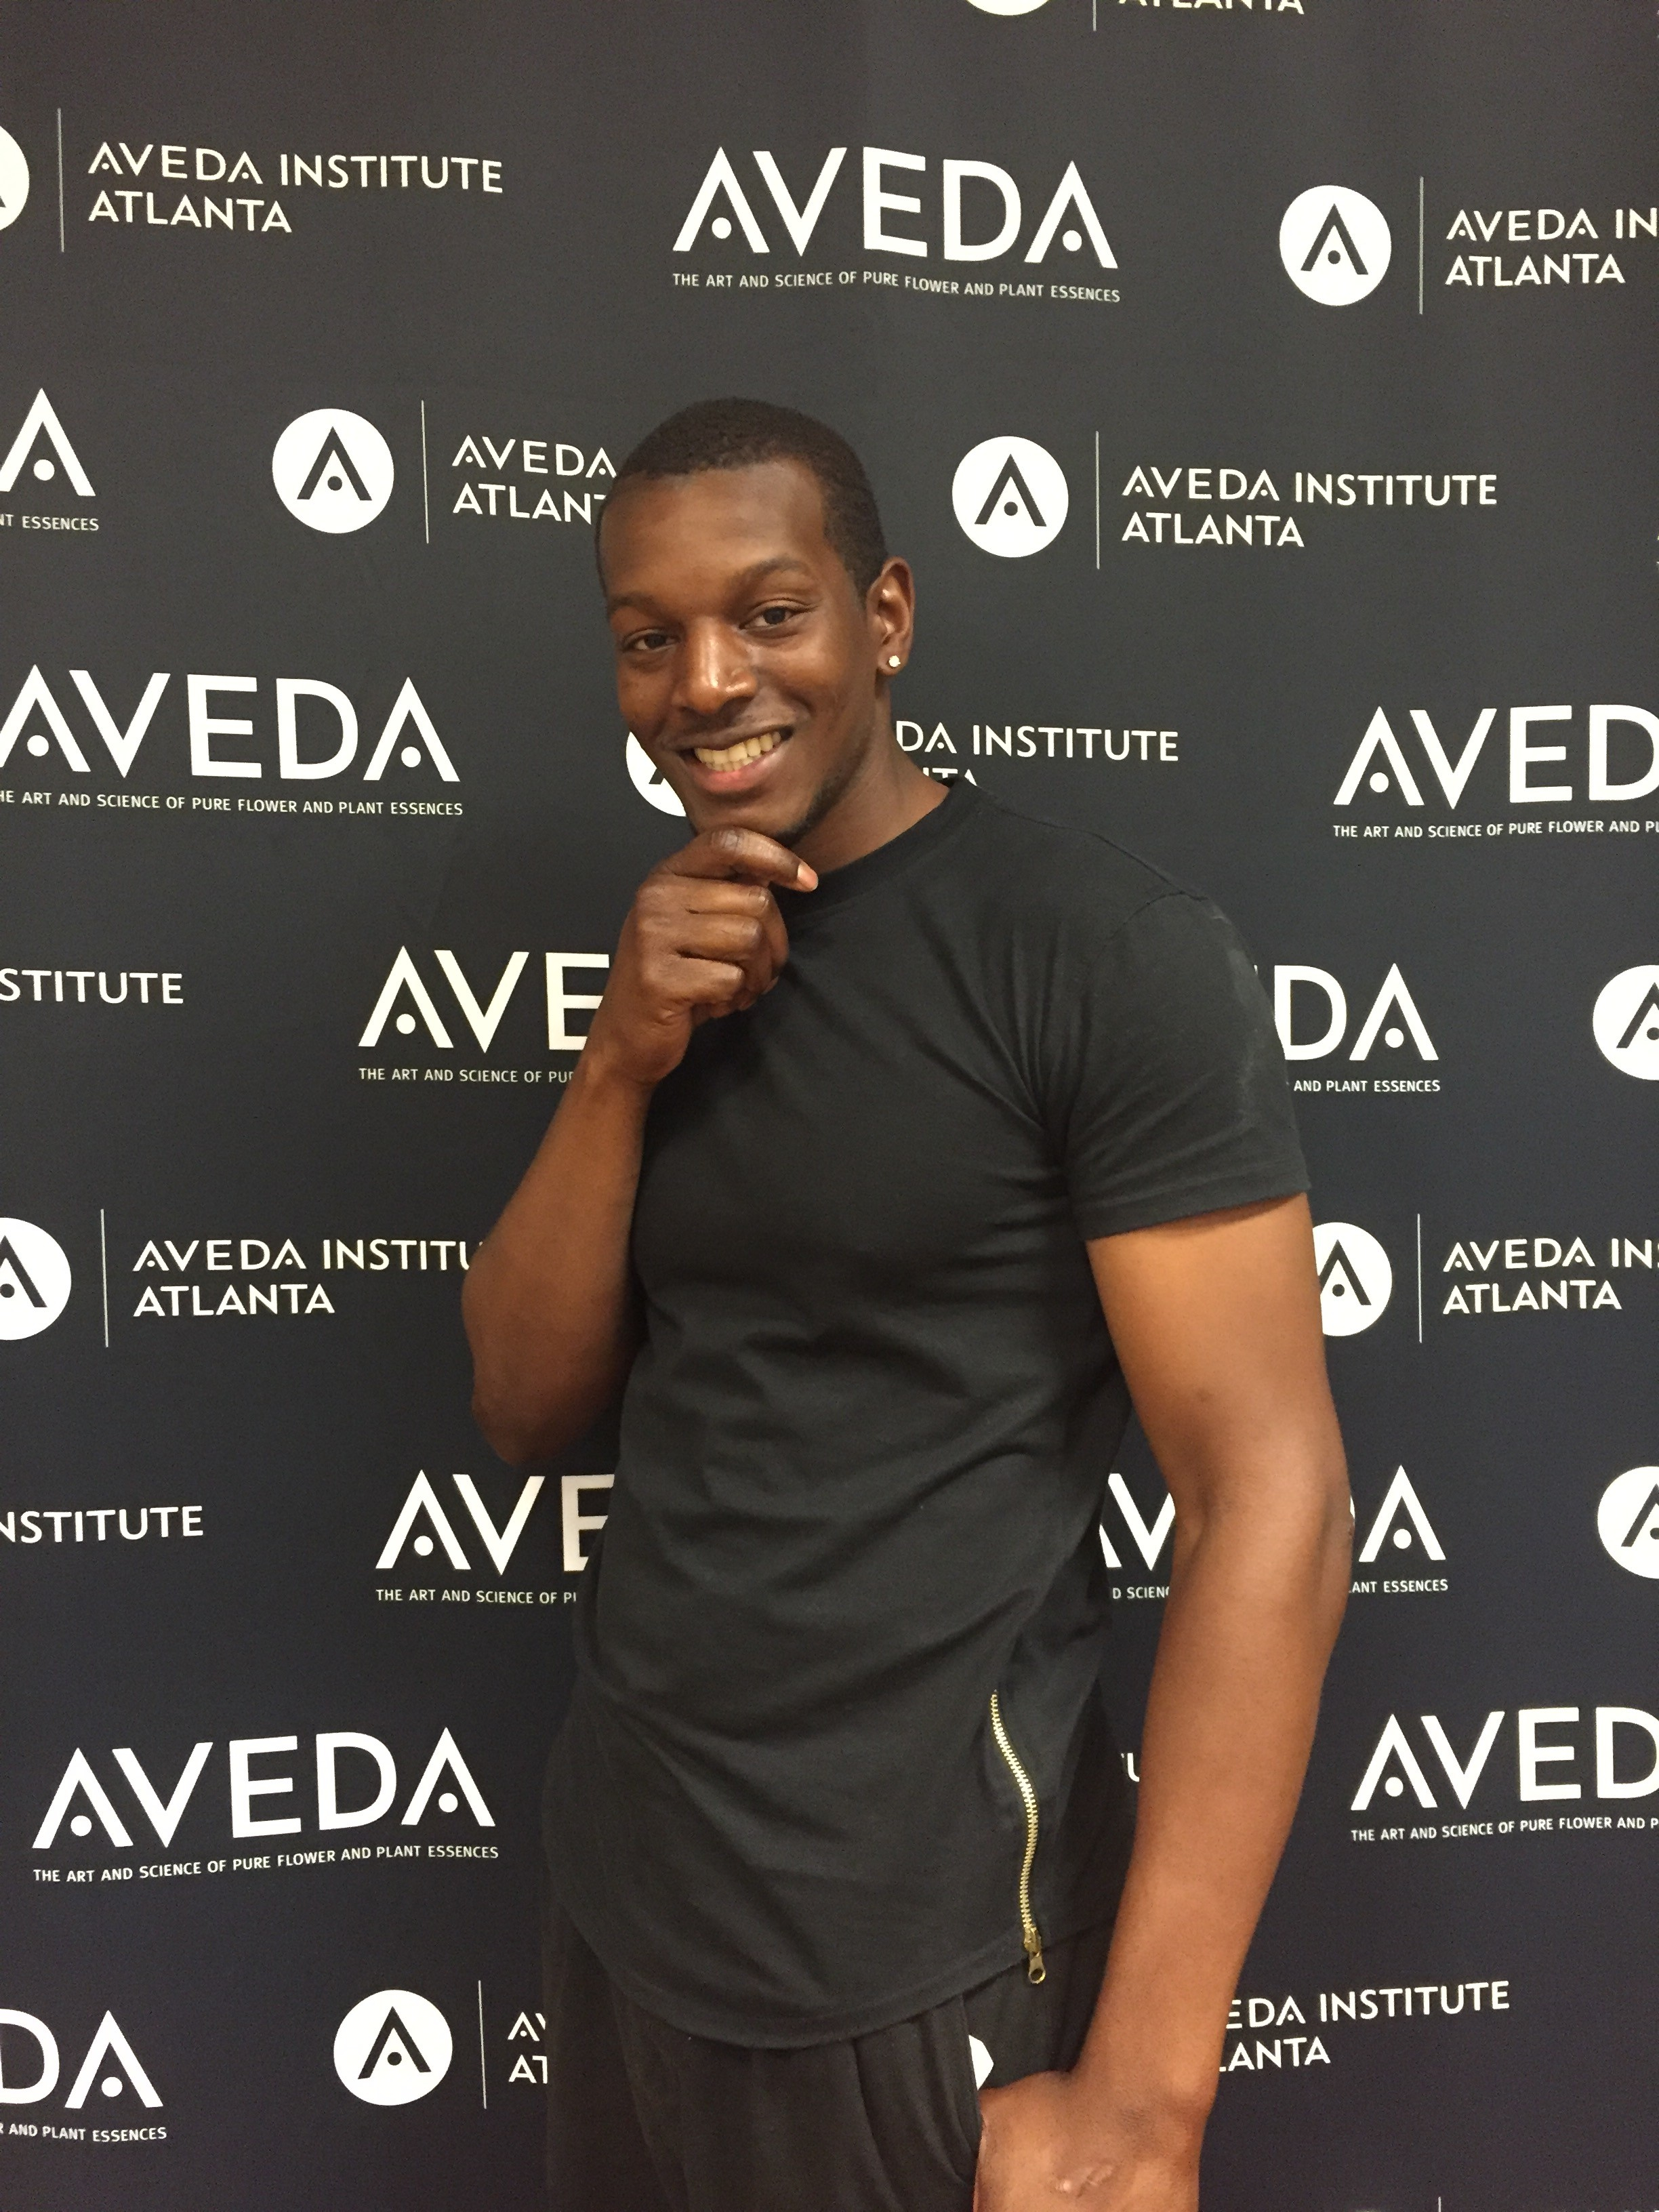 Aveda Arts & Sciences Institute Atlanta Student of the Month